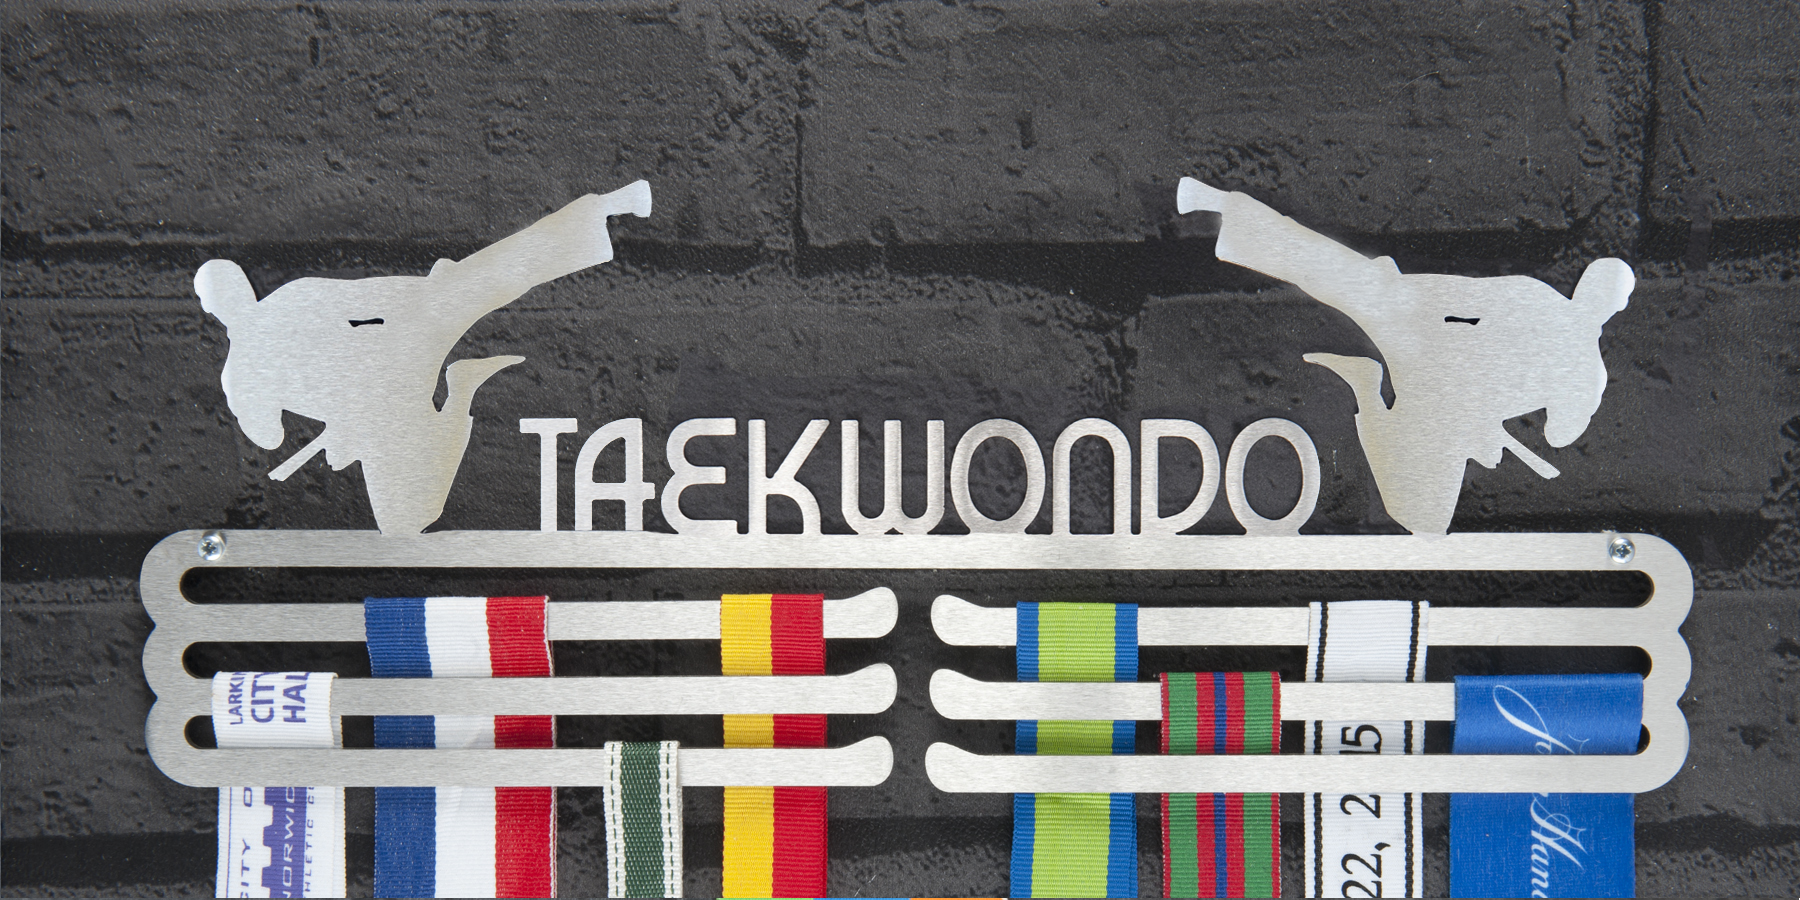 Taekwondo Medal Hanger and Medal Display from The Runners Wall